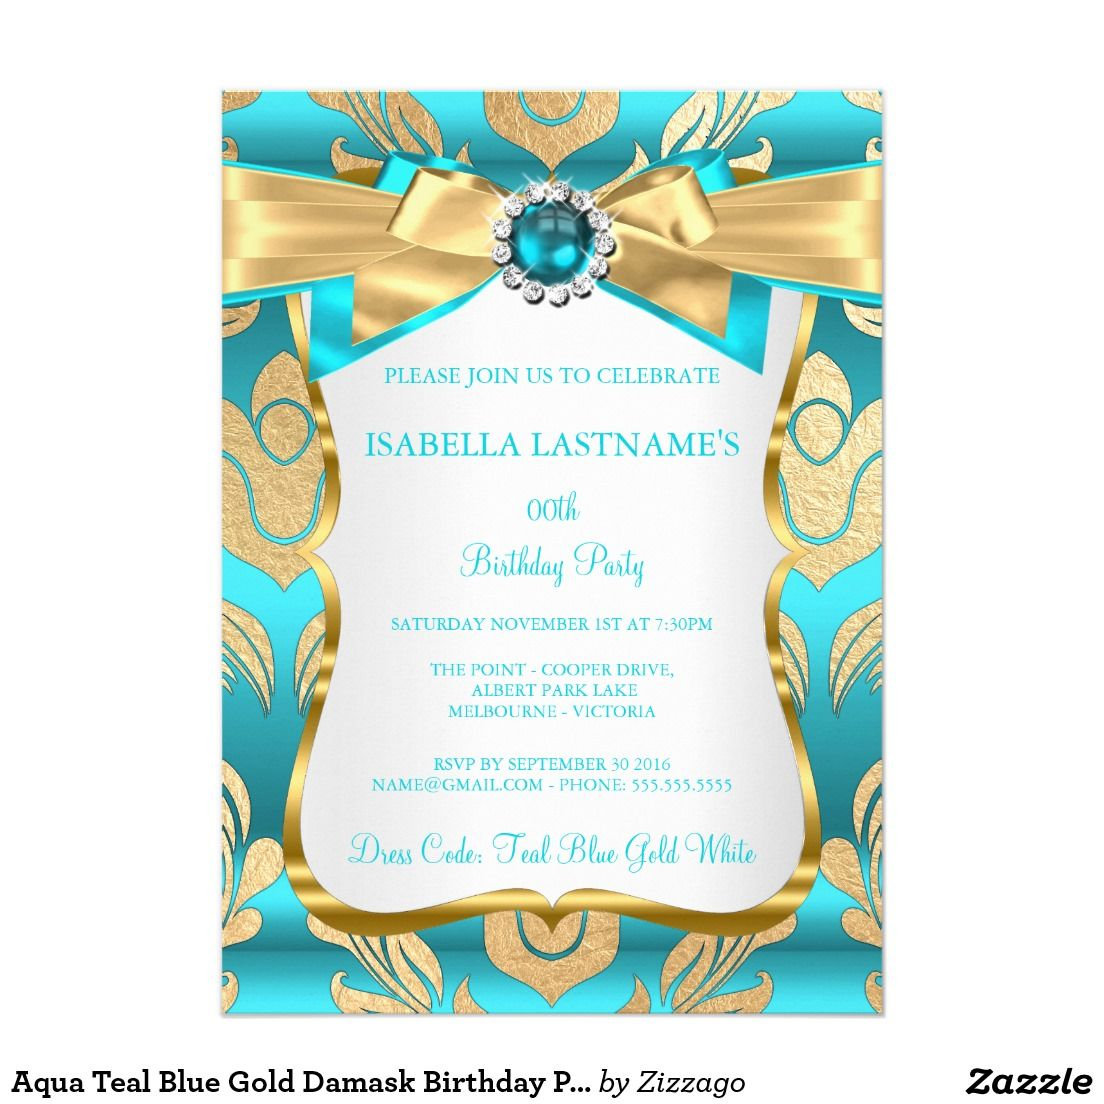 Aqua Teal Blue Gold Damask Birthday Party Invite | Blue gold, Teal ...